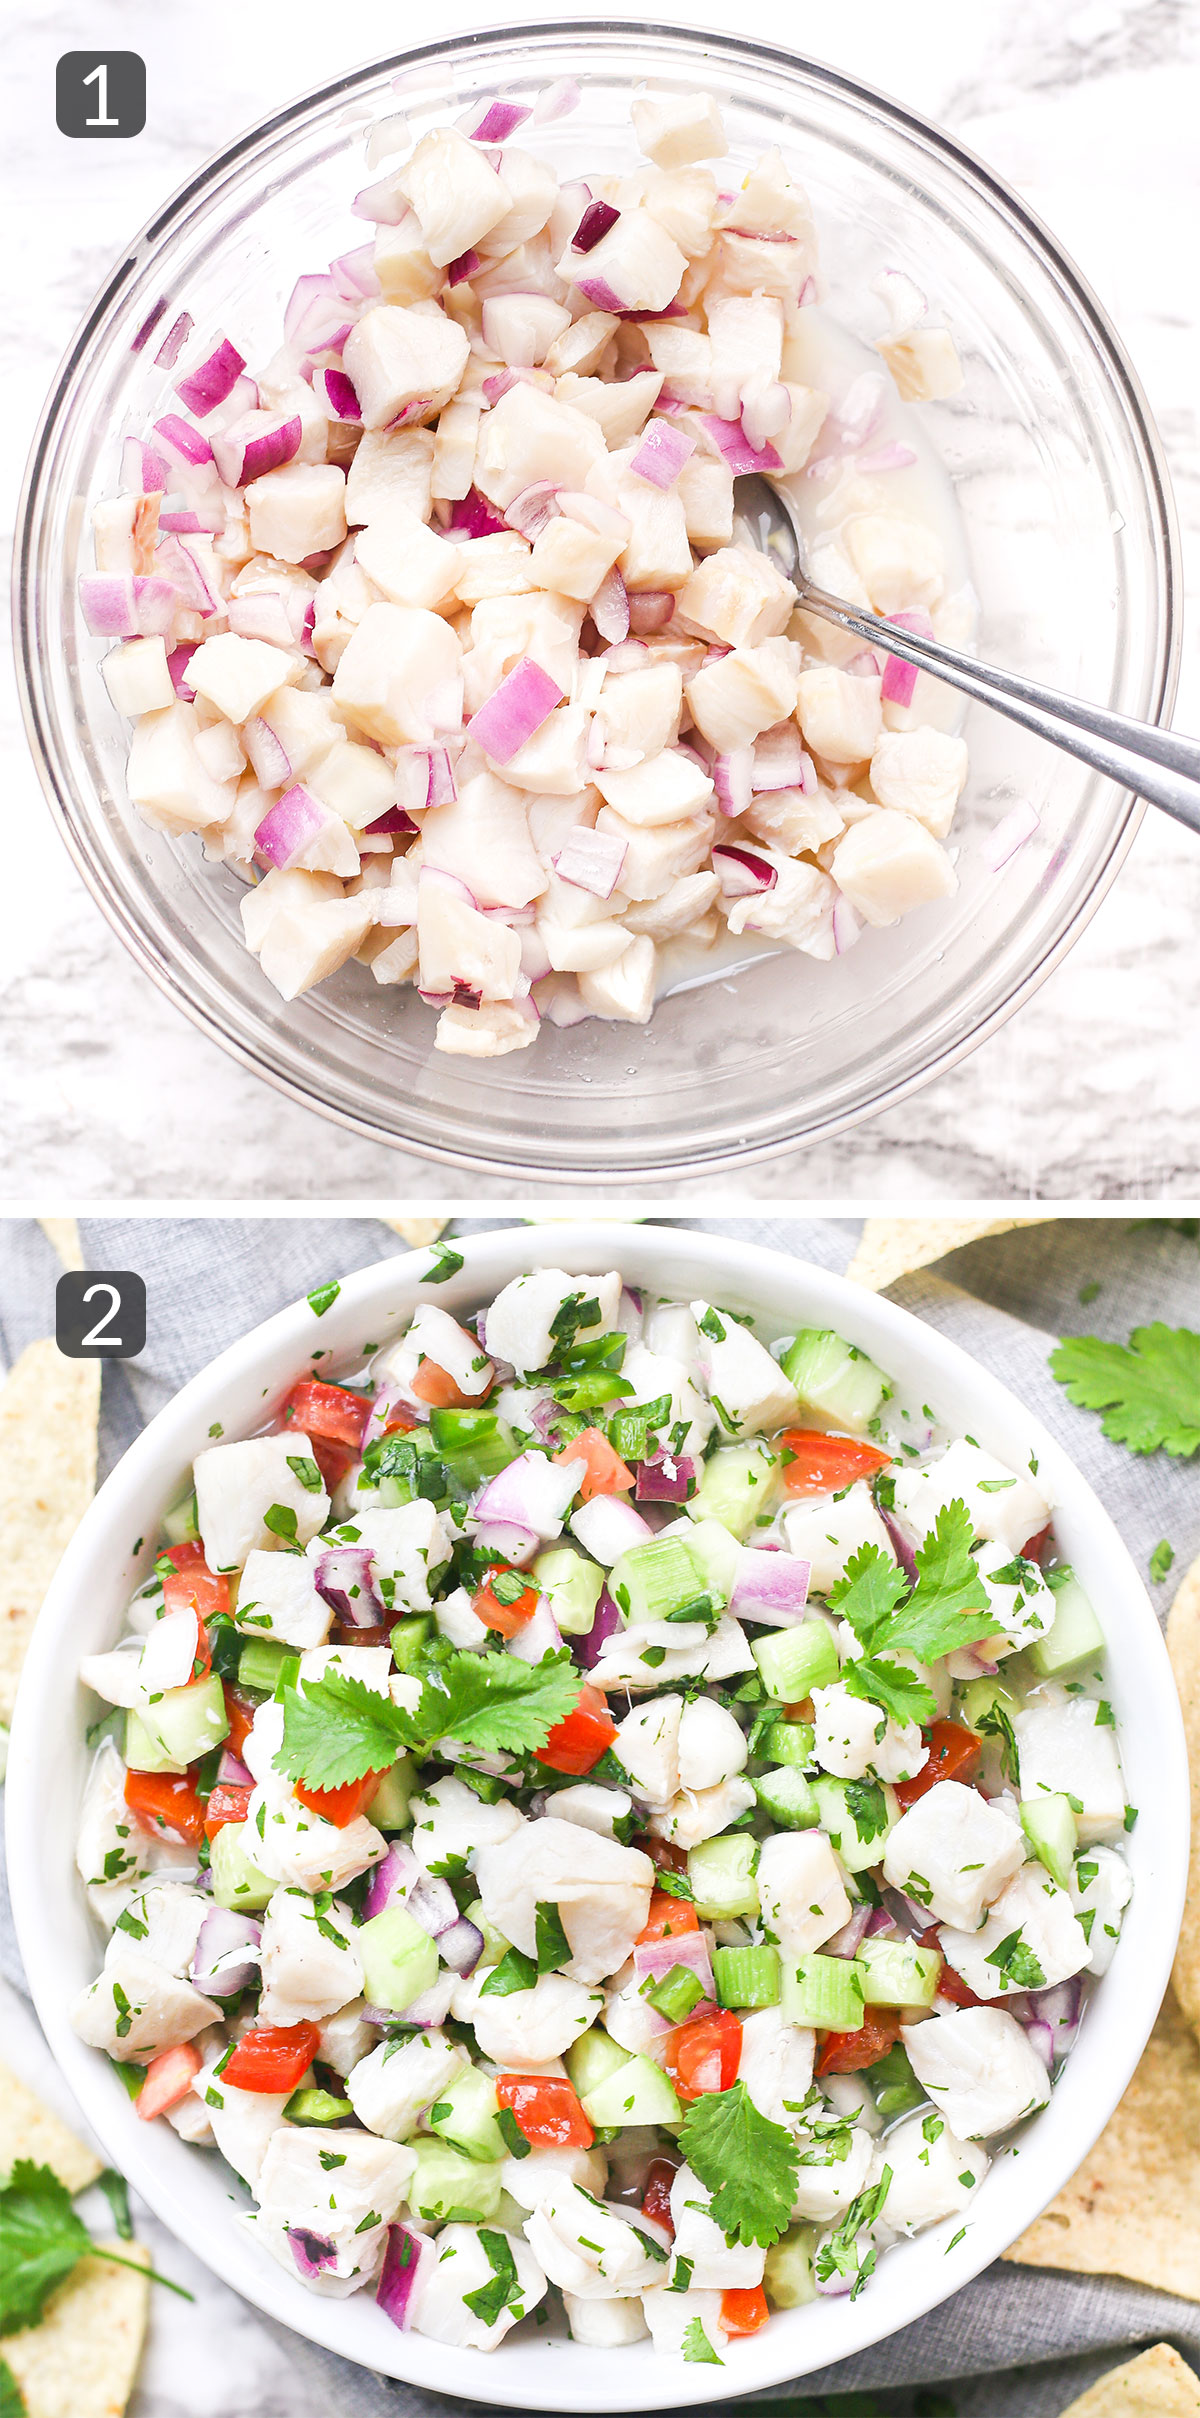 step photos showing how to make ceviche with fish